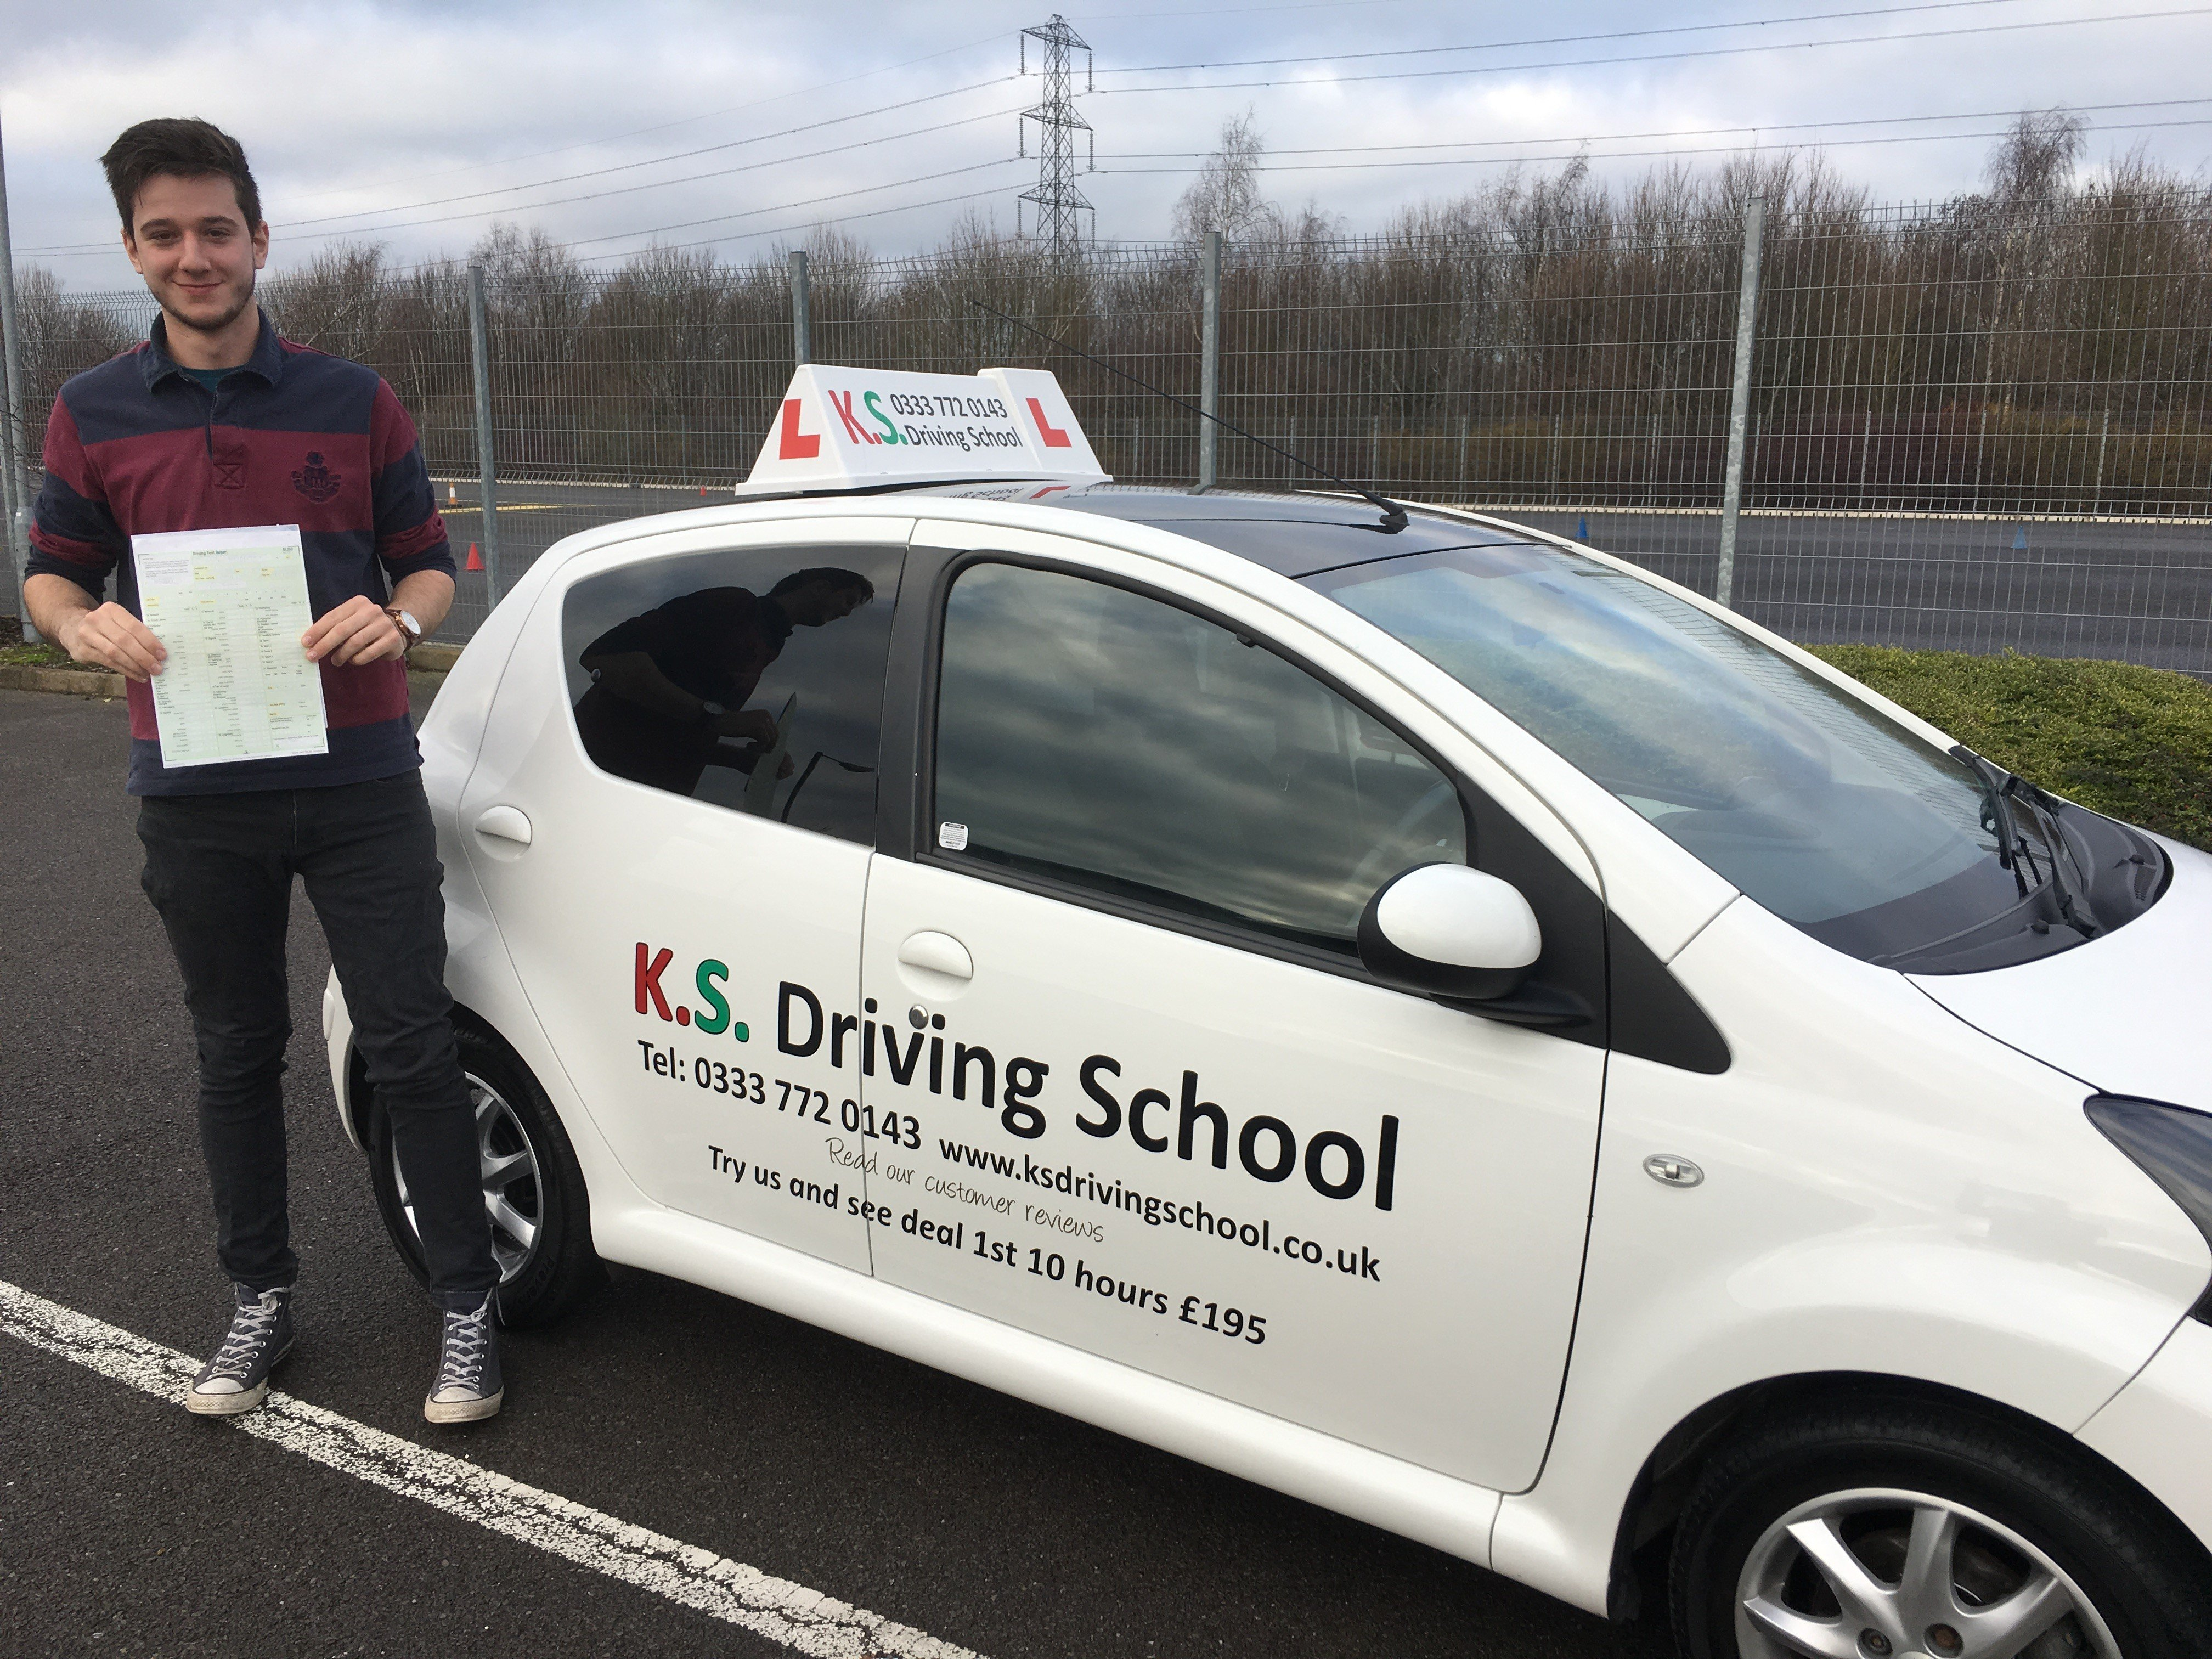 Driving Test in Shrewsbury on 27th December